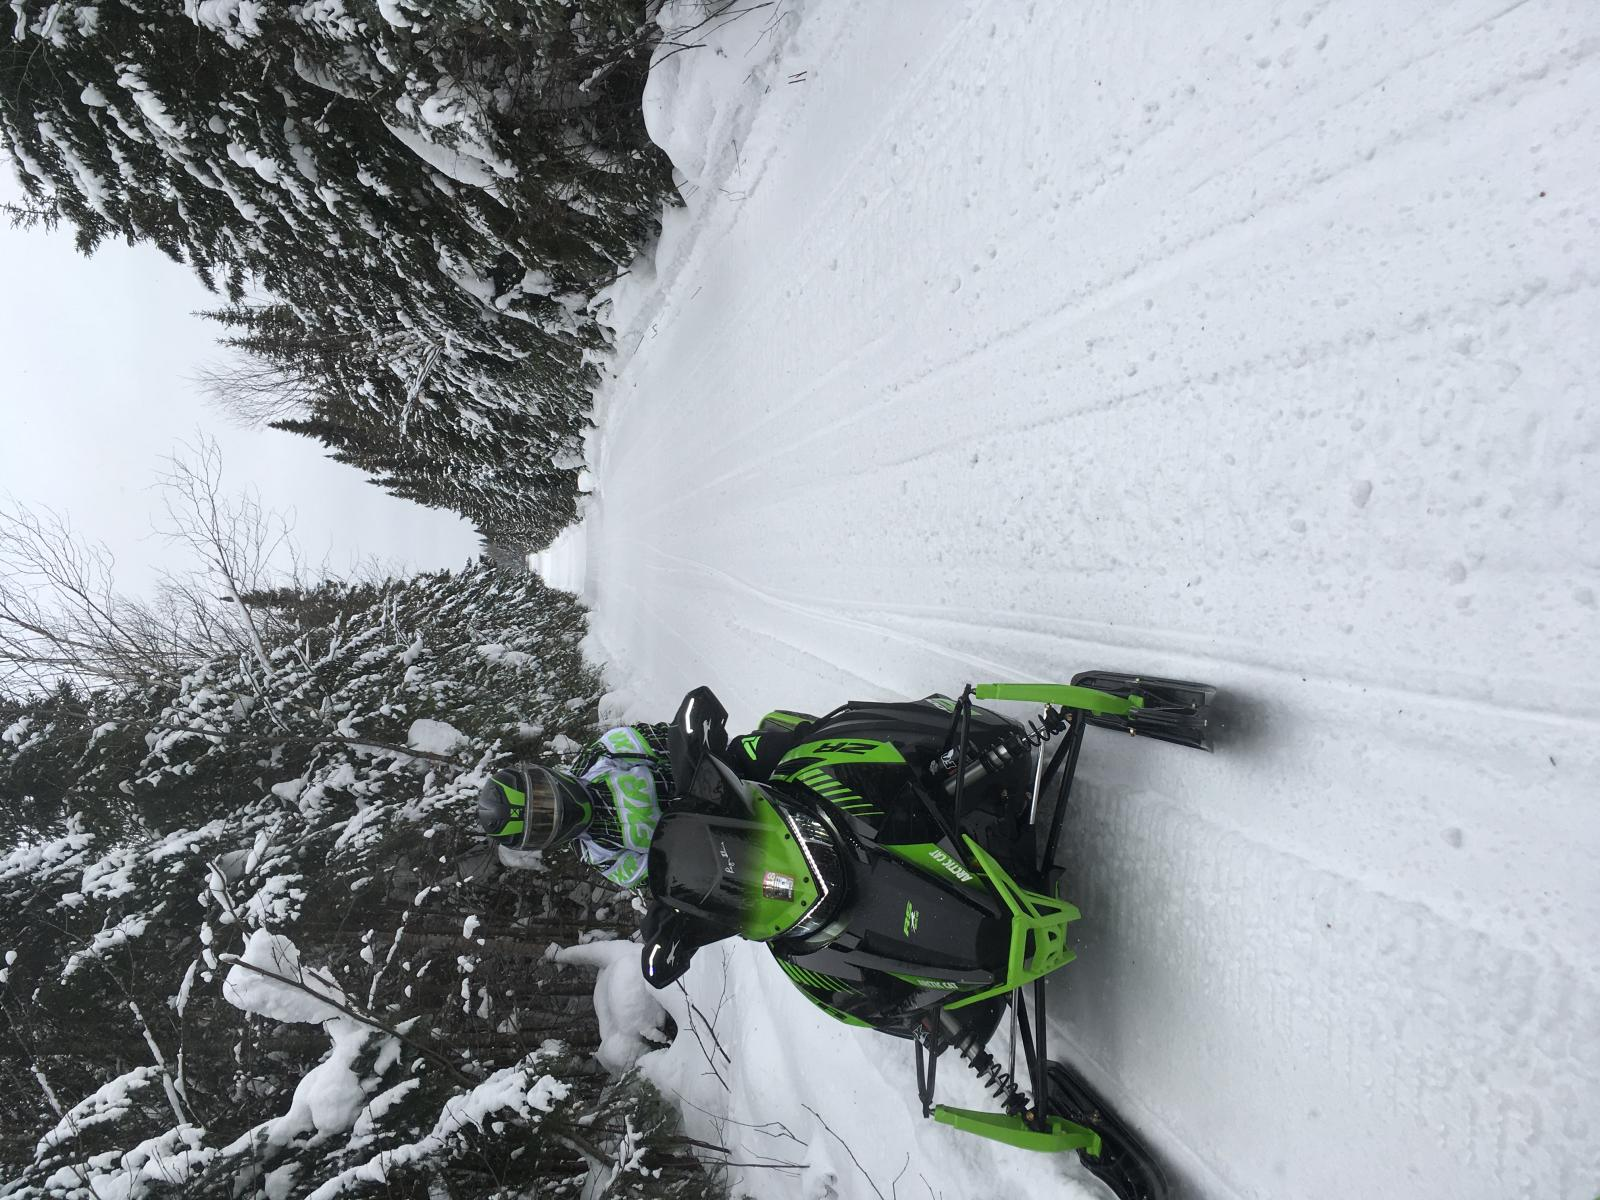 Click image for larger version  Name:snow 1.jpg Views:108 Size:302.6 KB ID:2074532